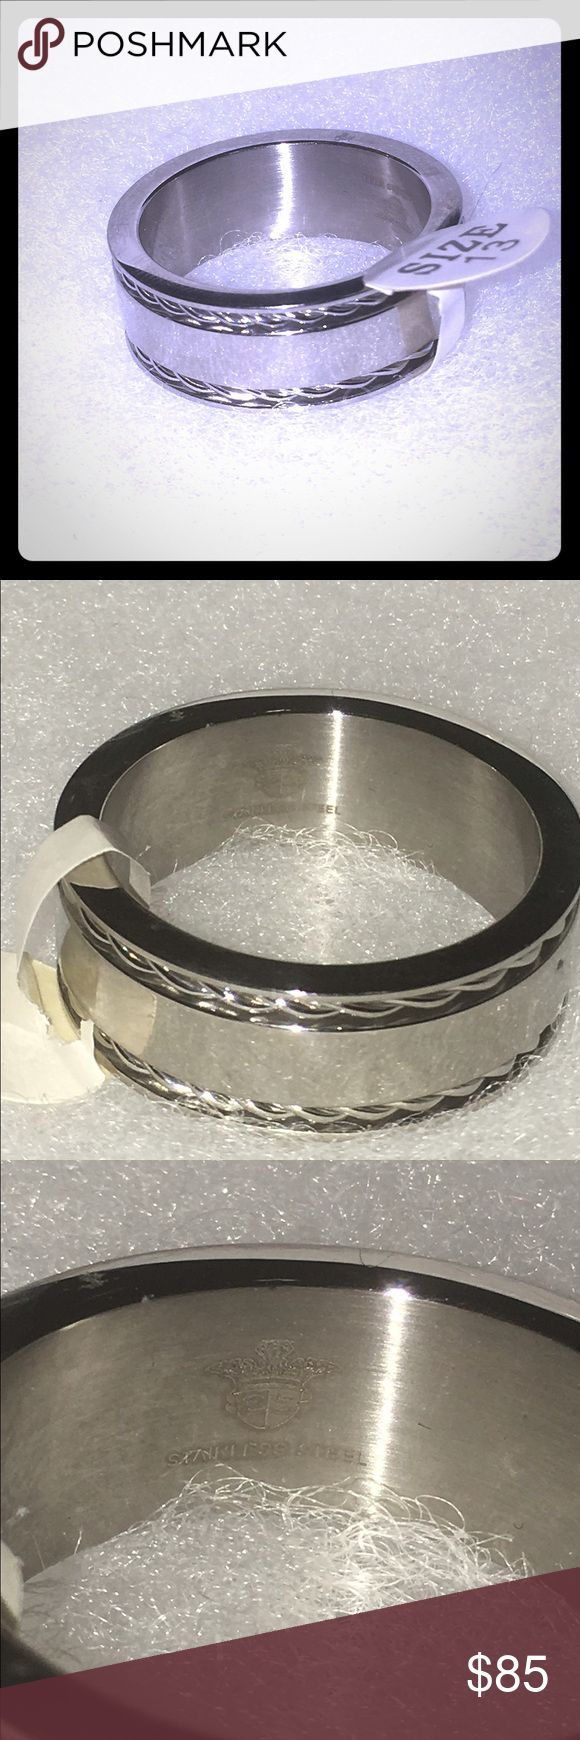 Nwt solid stainless steel men's ring size 13 Solid stainless steel men's size 13 very masculin,perfect for that special someone or even The perfect wedding ring! Stainless steel is high quality and very durable A forever type of ring, doesn't oxidize or taint overtime Accessories Jewelry